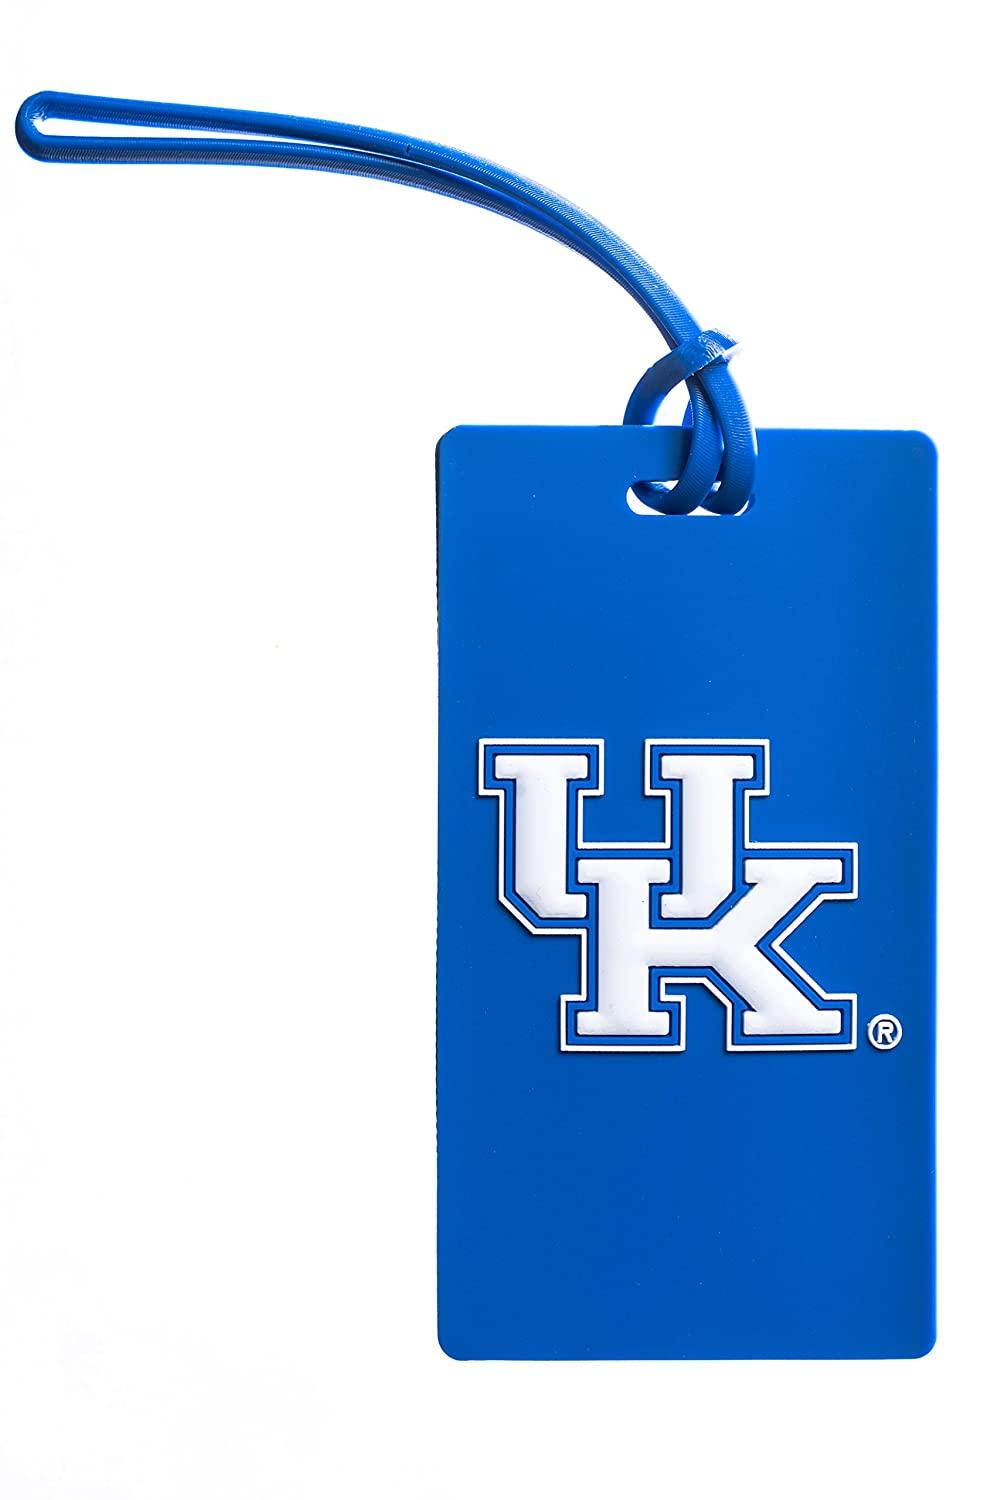 KENTUCKY WILDCATS NCAA PVC LUGGAGE TAG